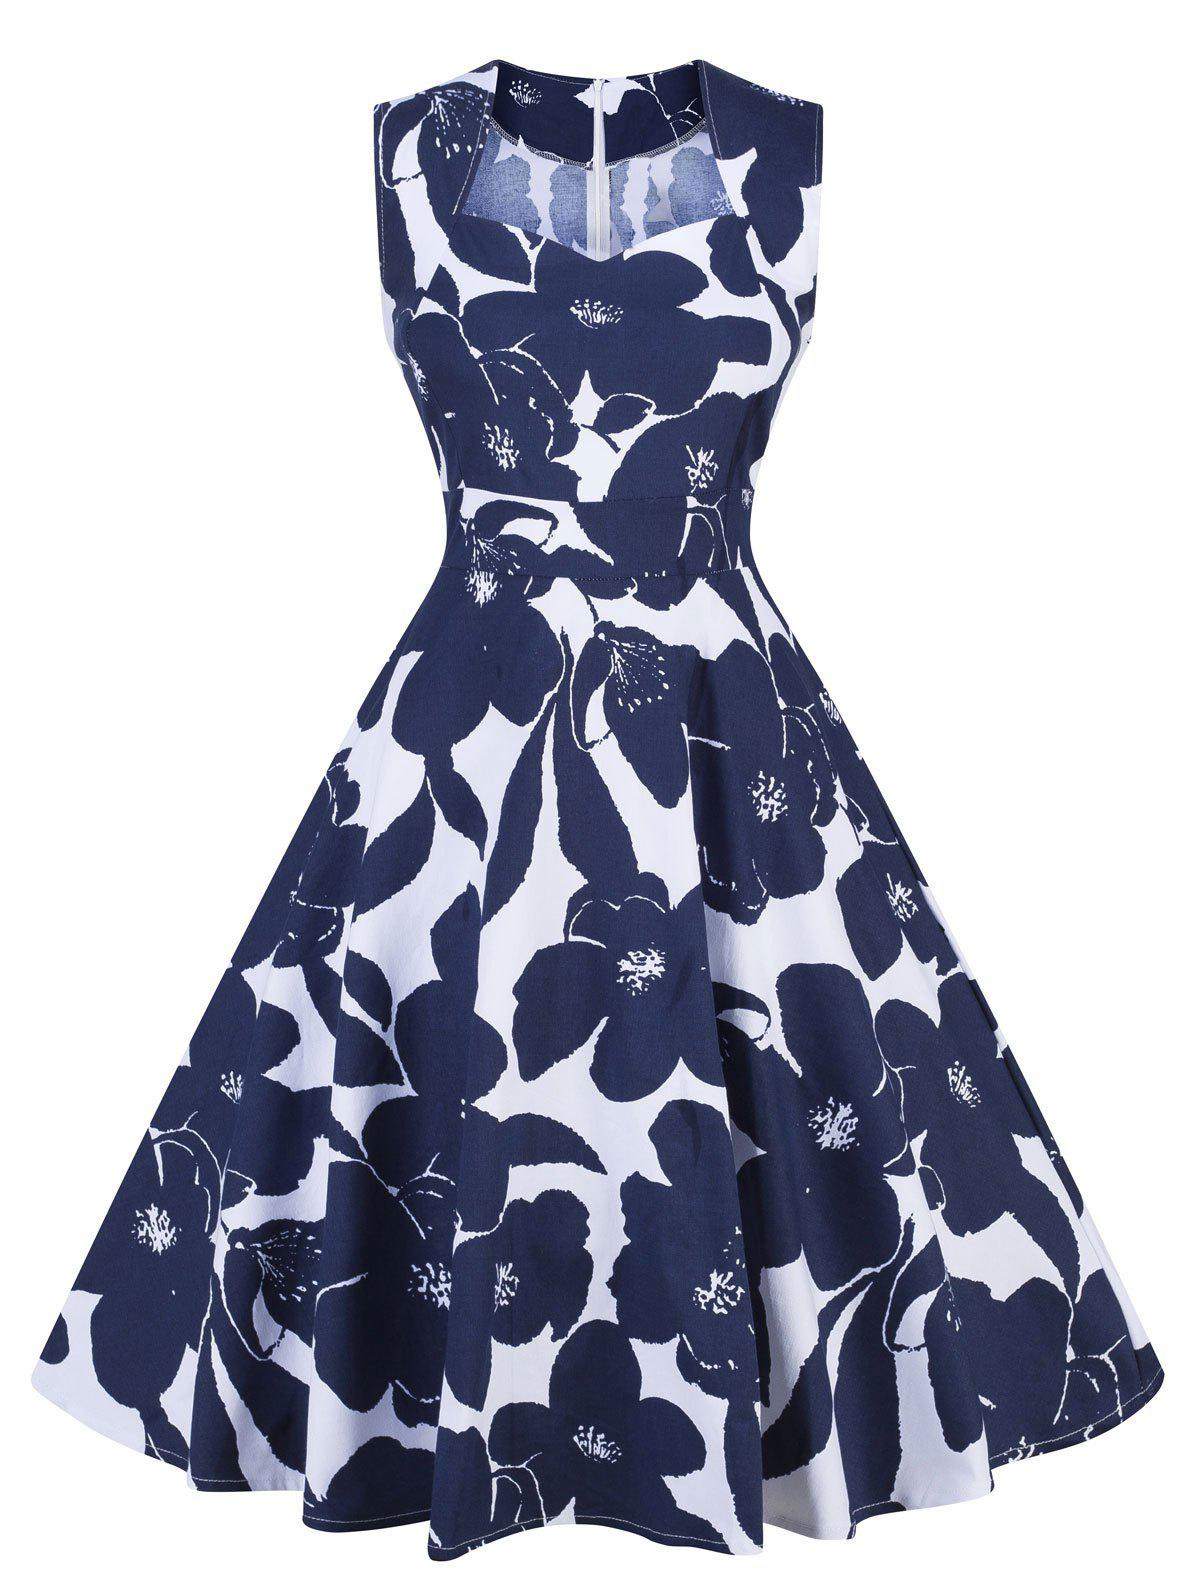 Retro Floral Print Swing Pin Up Dress retro ruched swing pin up dress